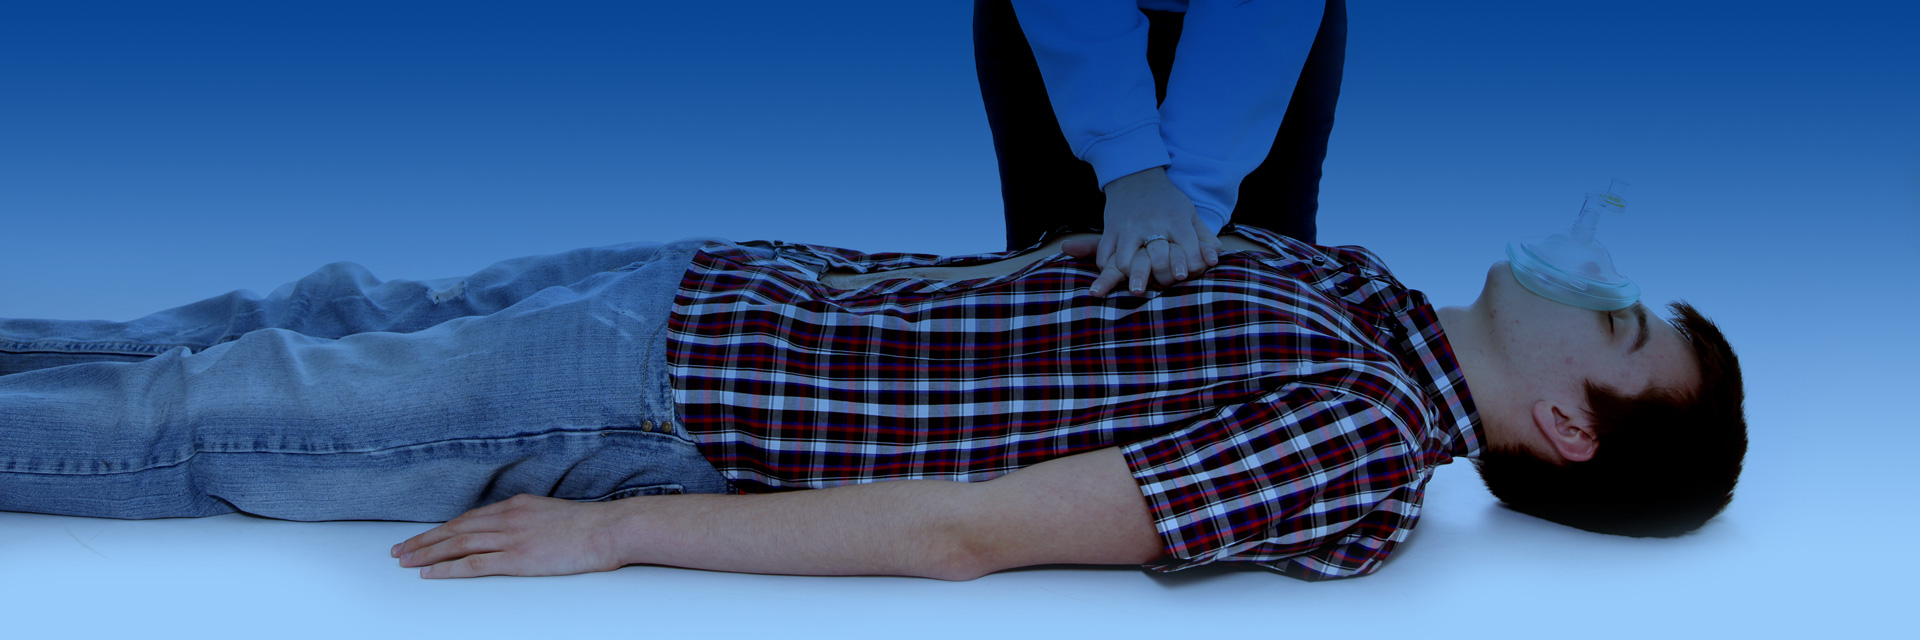 iatde-wp-courses-cpr-1920